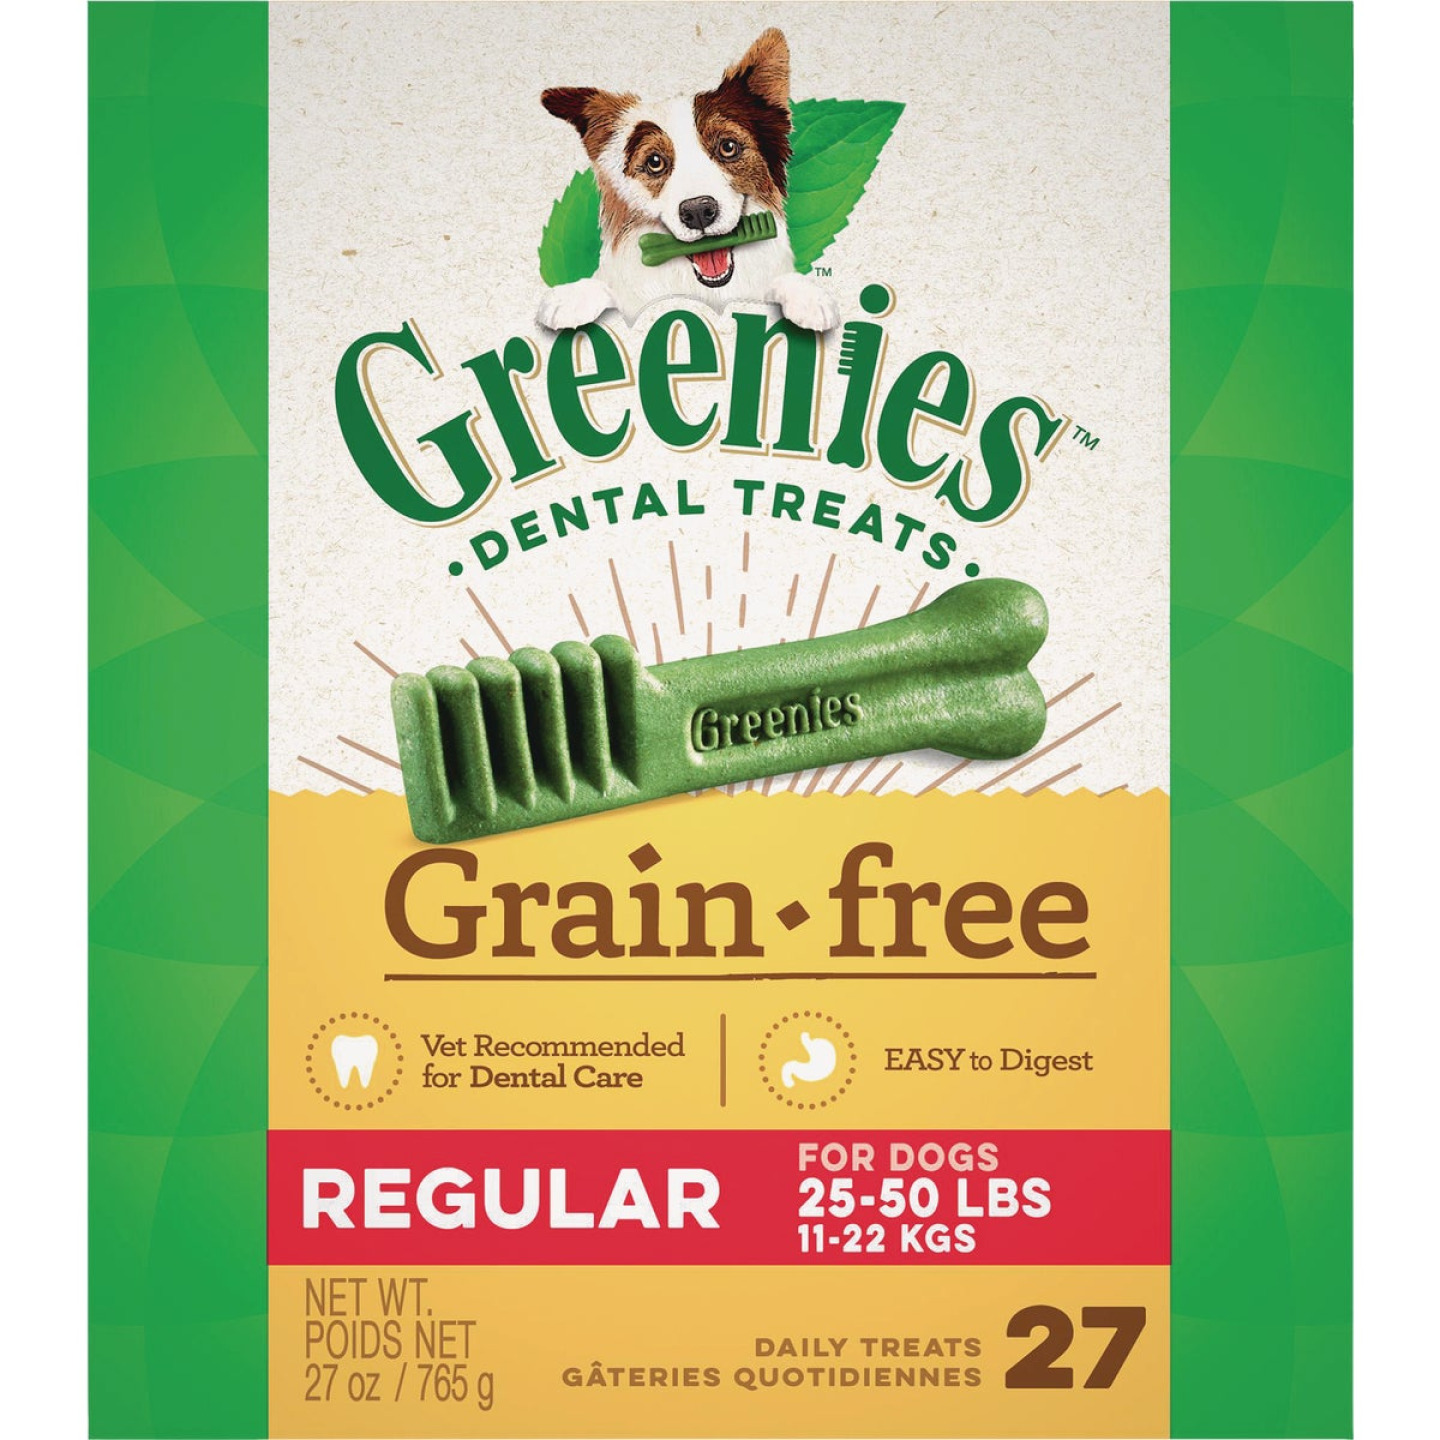 Greenies Regular Medium Dog Original Flavor Grain-Free Dental Dog Treat (27-Pack) Image 1